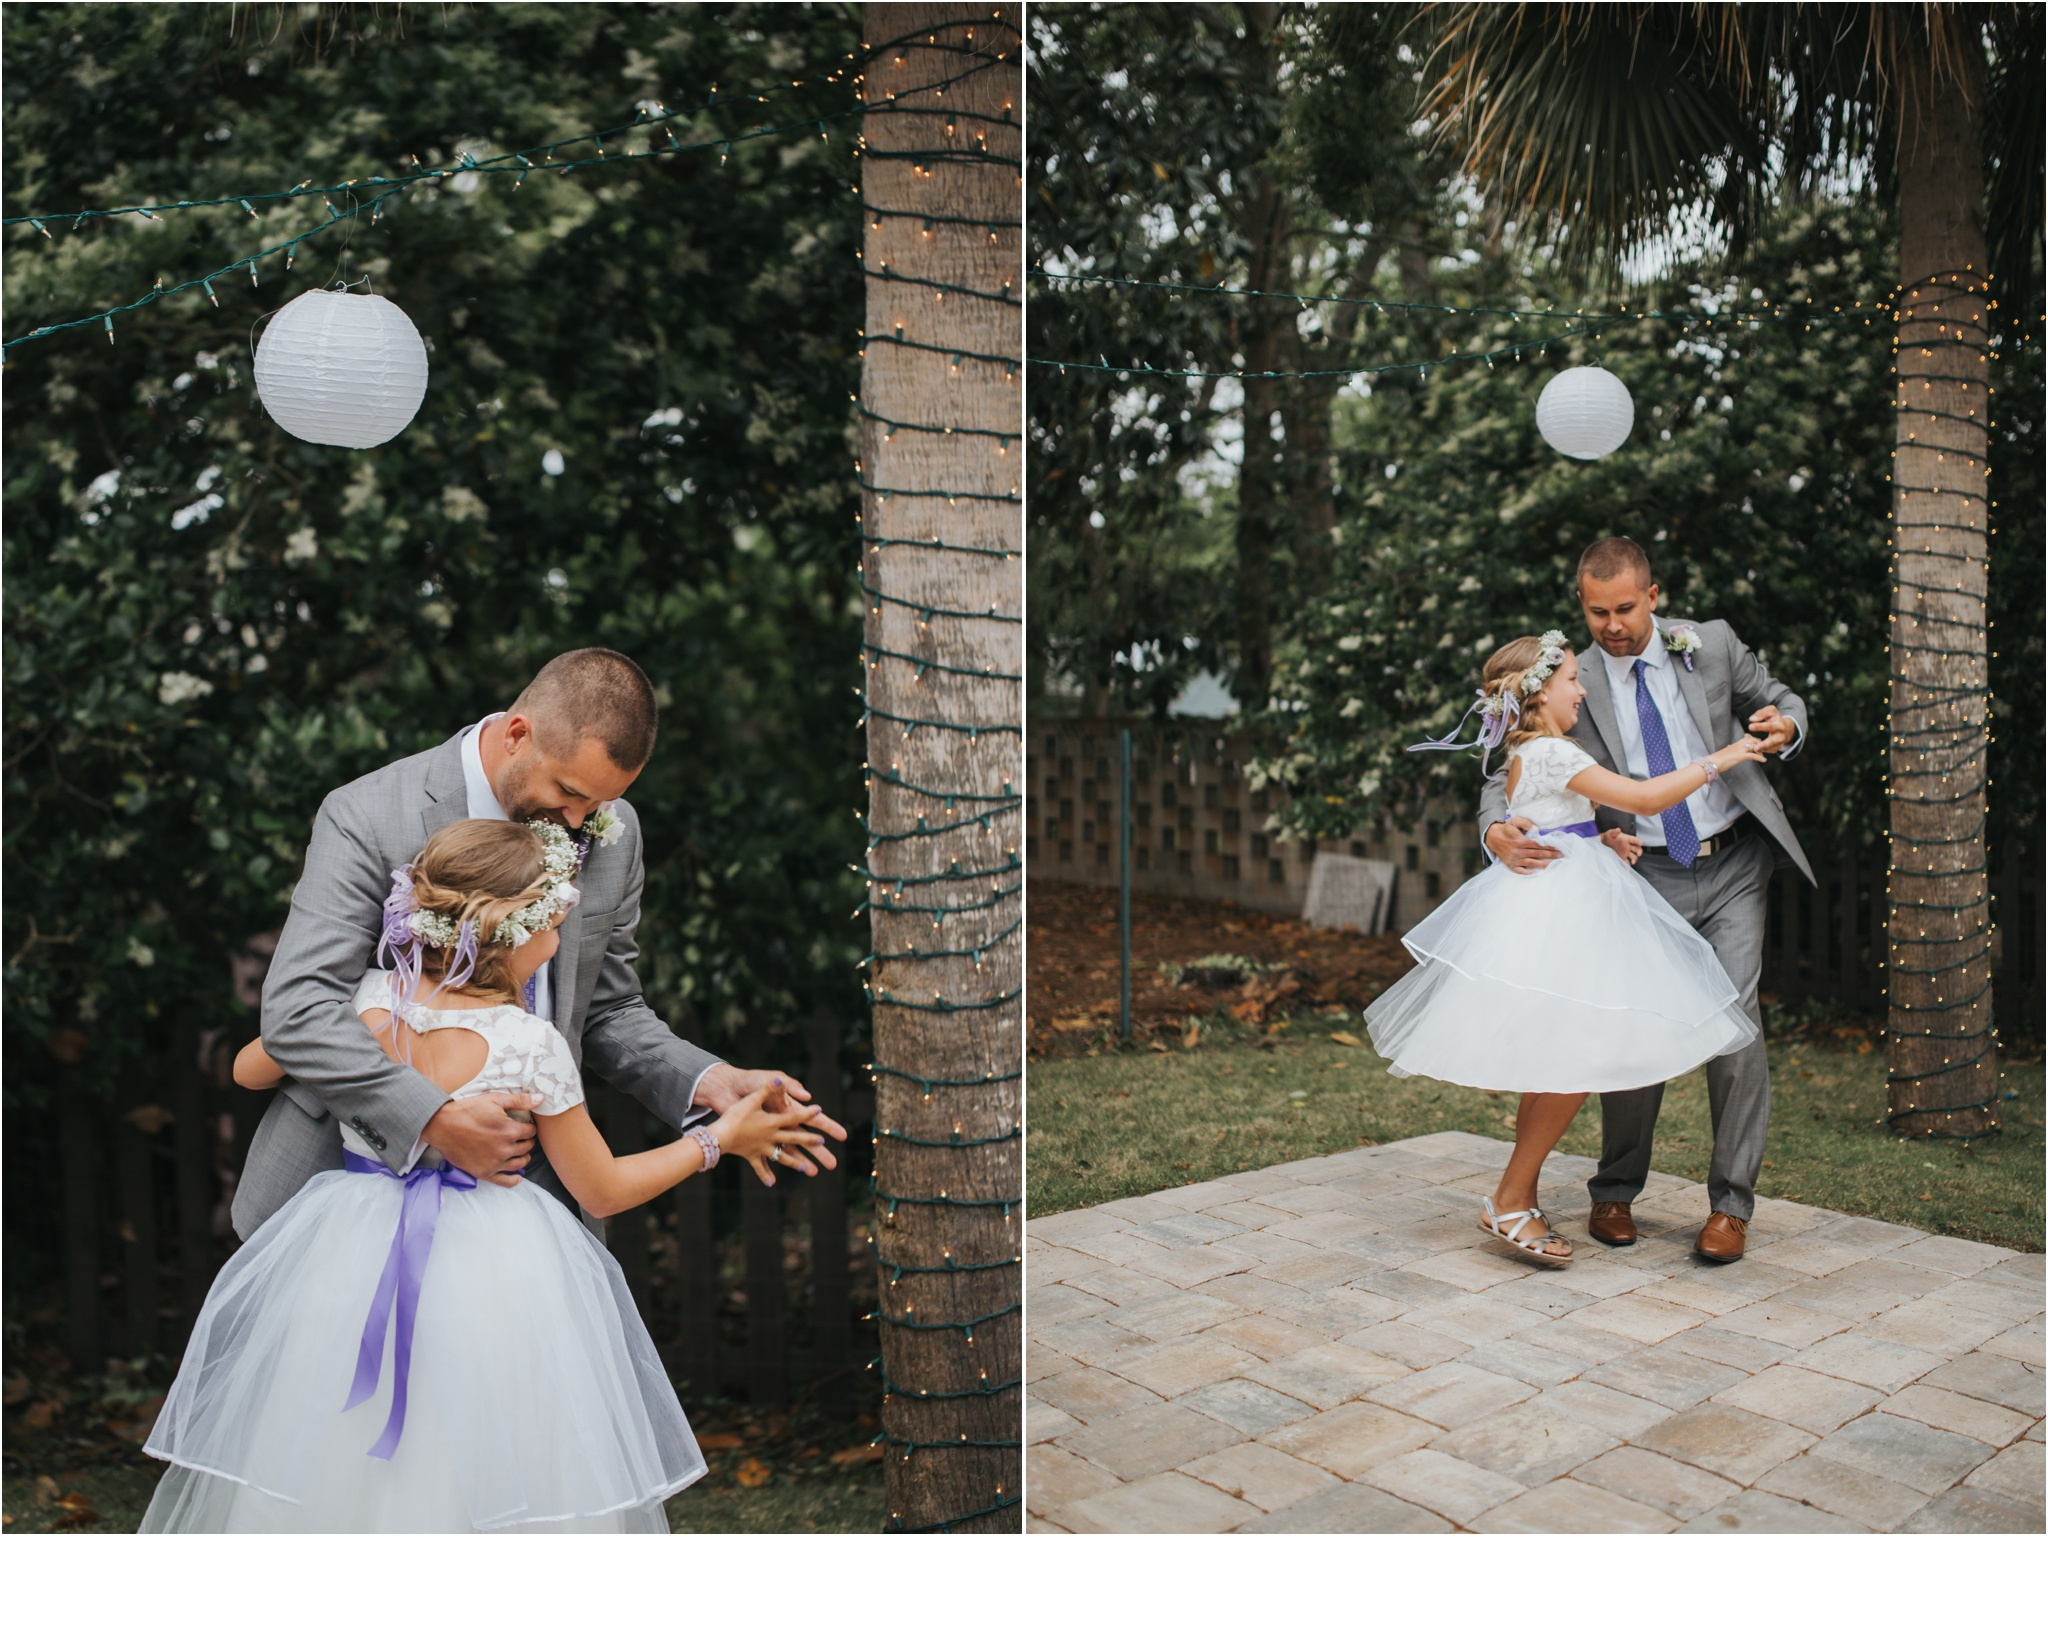 Rainey_Gregg_Photography_St._Simons_Island_Georgia_California_Wedding_Portrait_Photography_1539.jpg